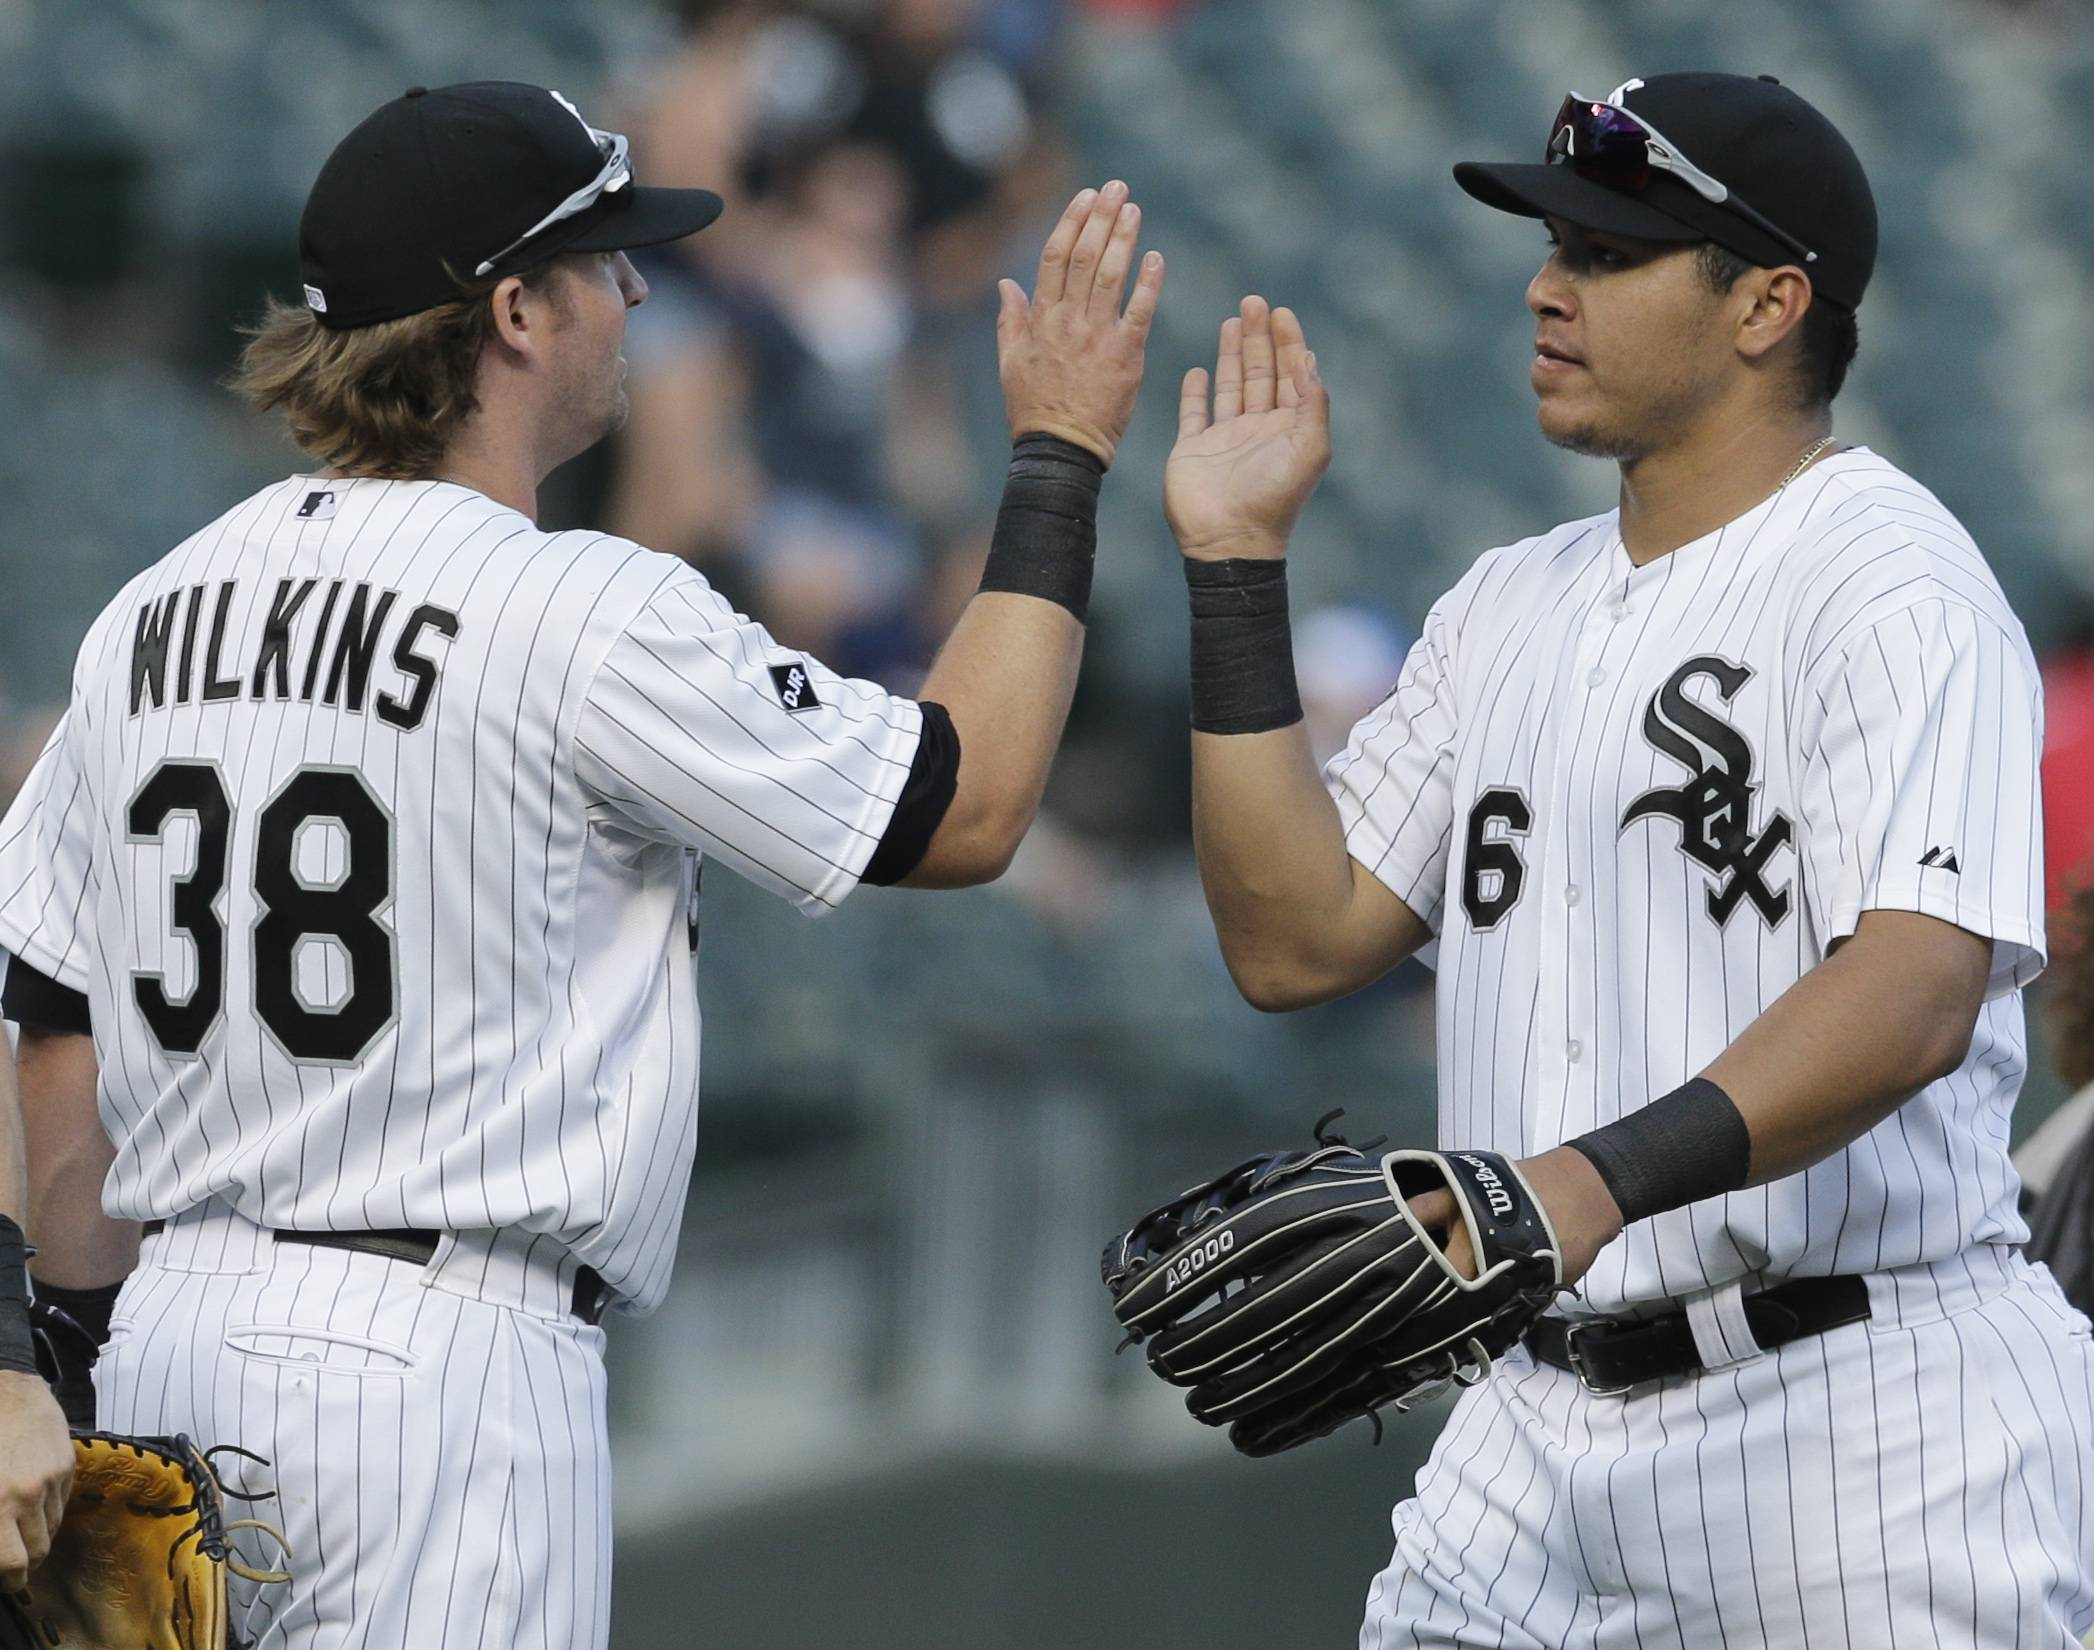 Andy Wilkins, left, shown with White Sox teammate Avisail Garcia, should see meaningful playing time in September following the departures of Adam Dunn and Alejandro De Aza.